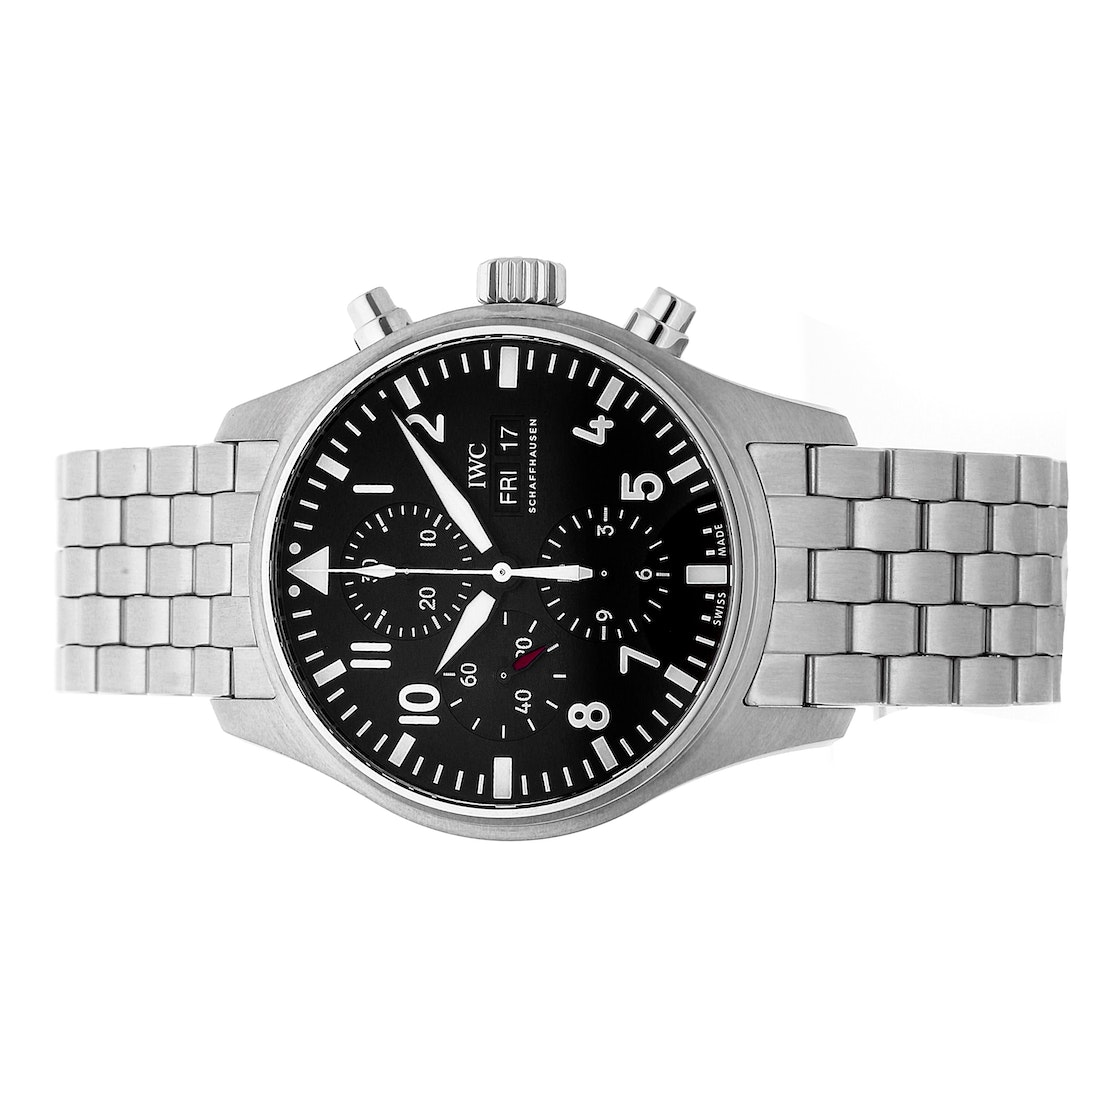 IWC Pilot's Watch Chronograph IW3777-10